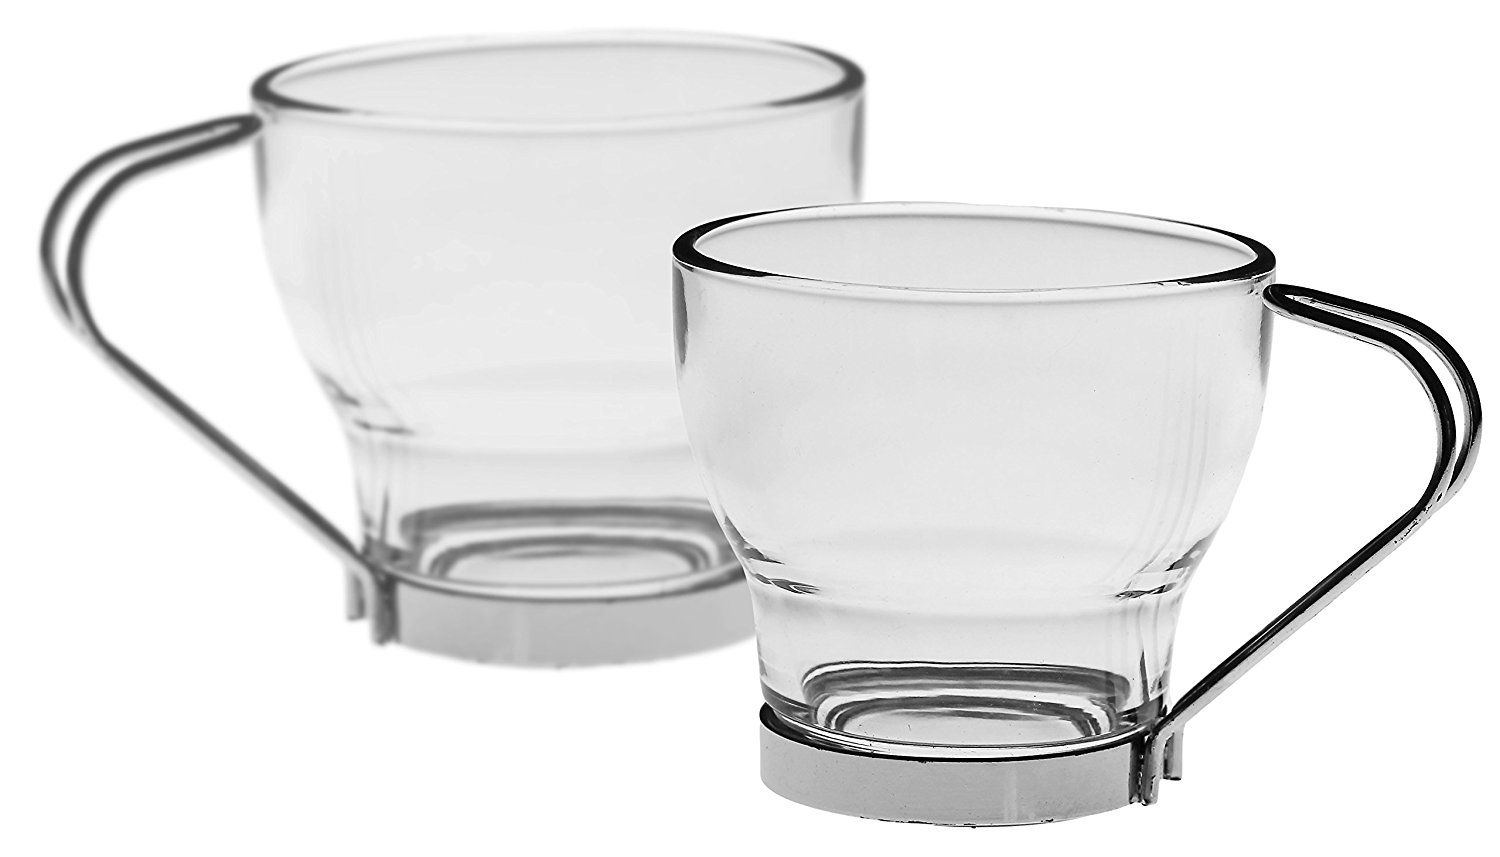 Bezrat Luxury Espresso Glass Coffee Cups With Handle [Set Of 6] Tempered Glass  Espresso Cups   Removable Stainless Steel Latte Mugs | 4 Ounces Tea Espresso  ...